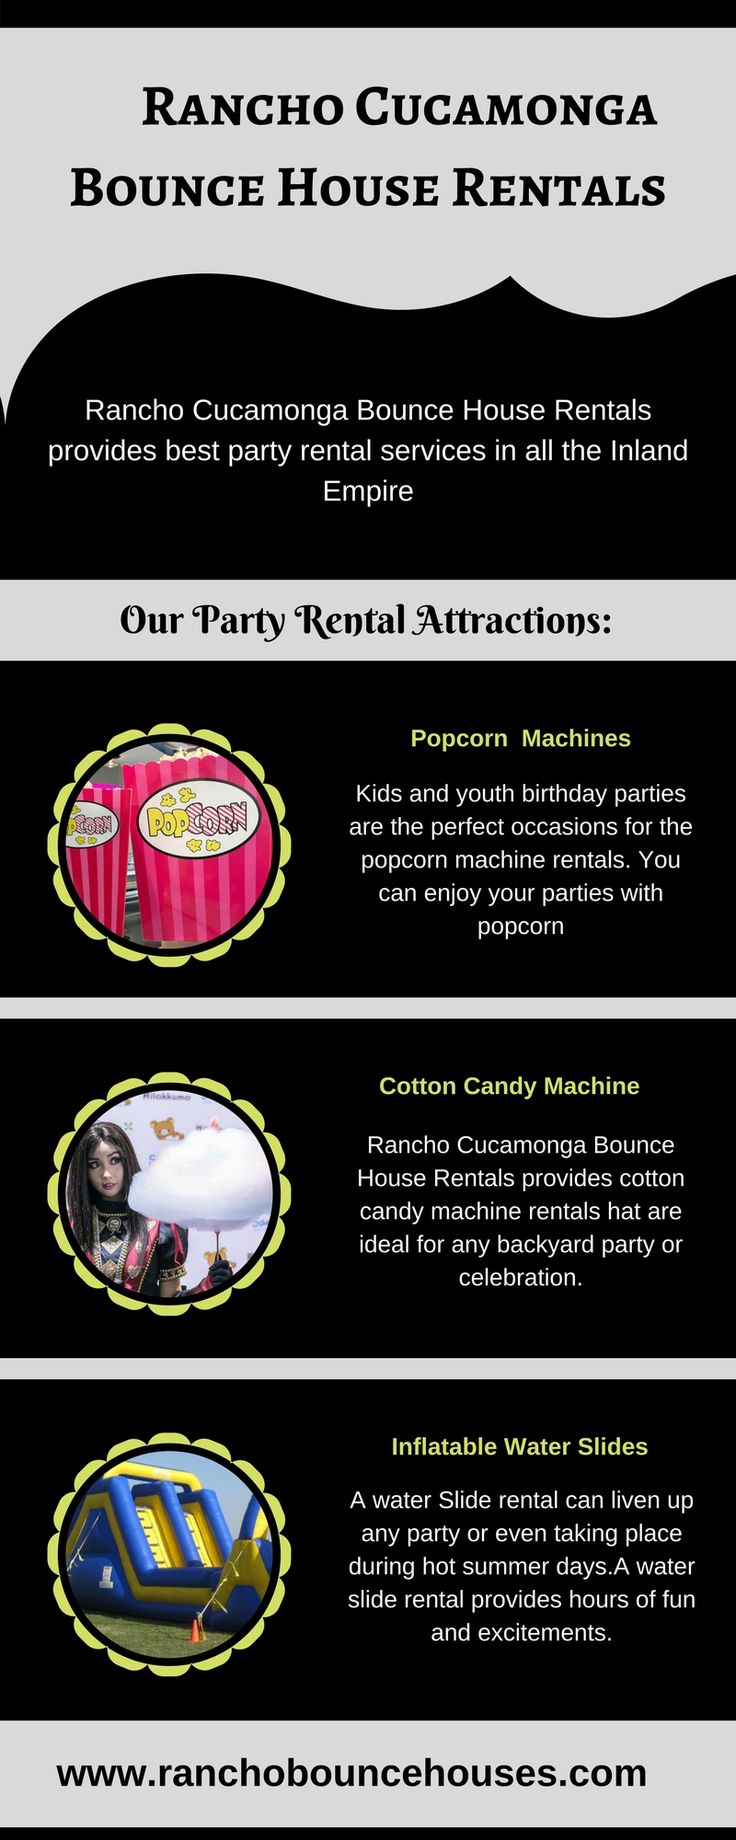 This infographic shares useful information about the bounce house rentals. If you are looking for the best bounce house rentals in Bloomington, Upland, Colton, Claremont, Fontana, then contact the Rancho Cucamonga Bounce House Rentals which provides top quality bounce house rentals.